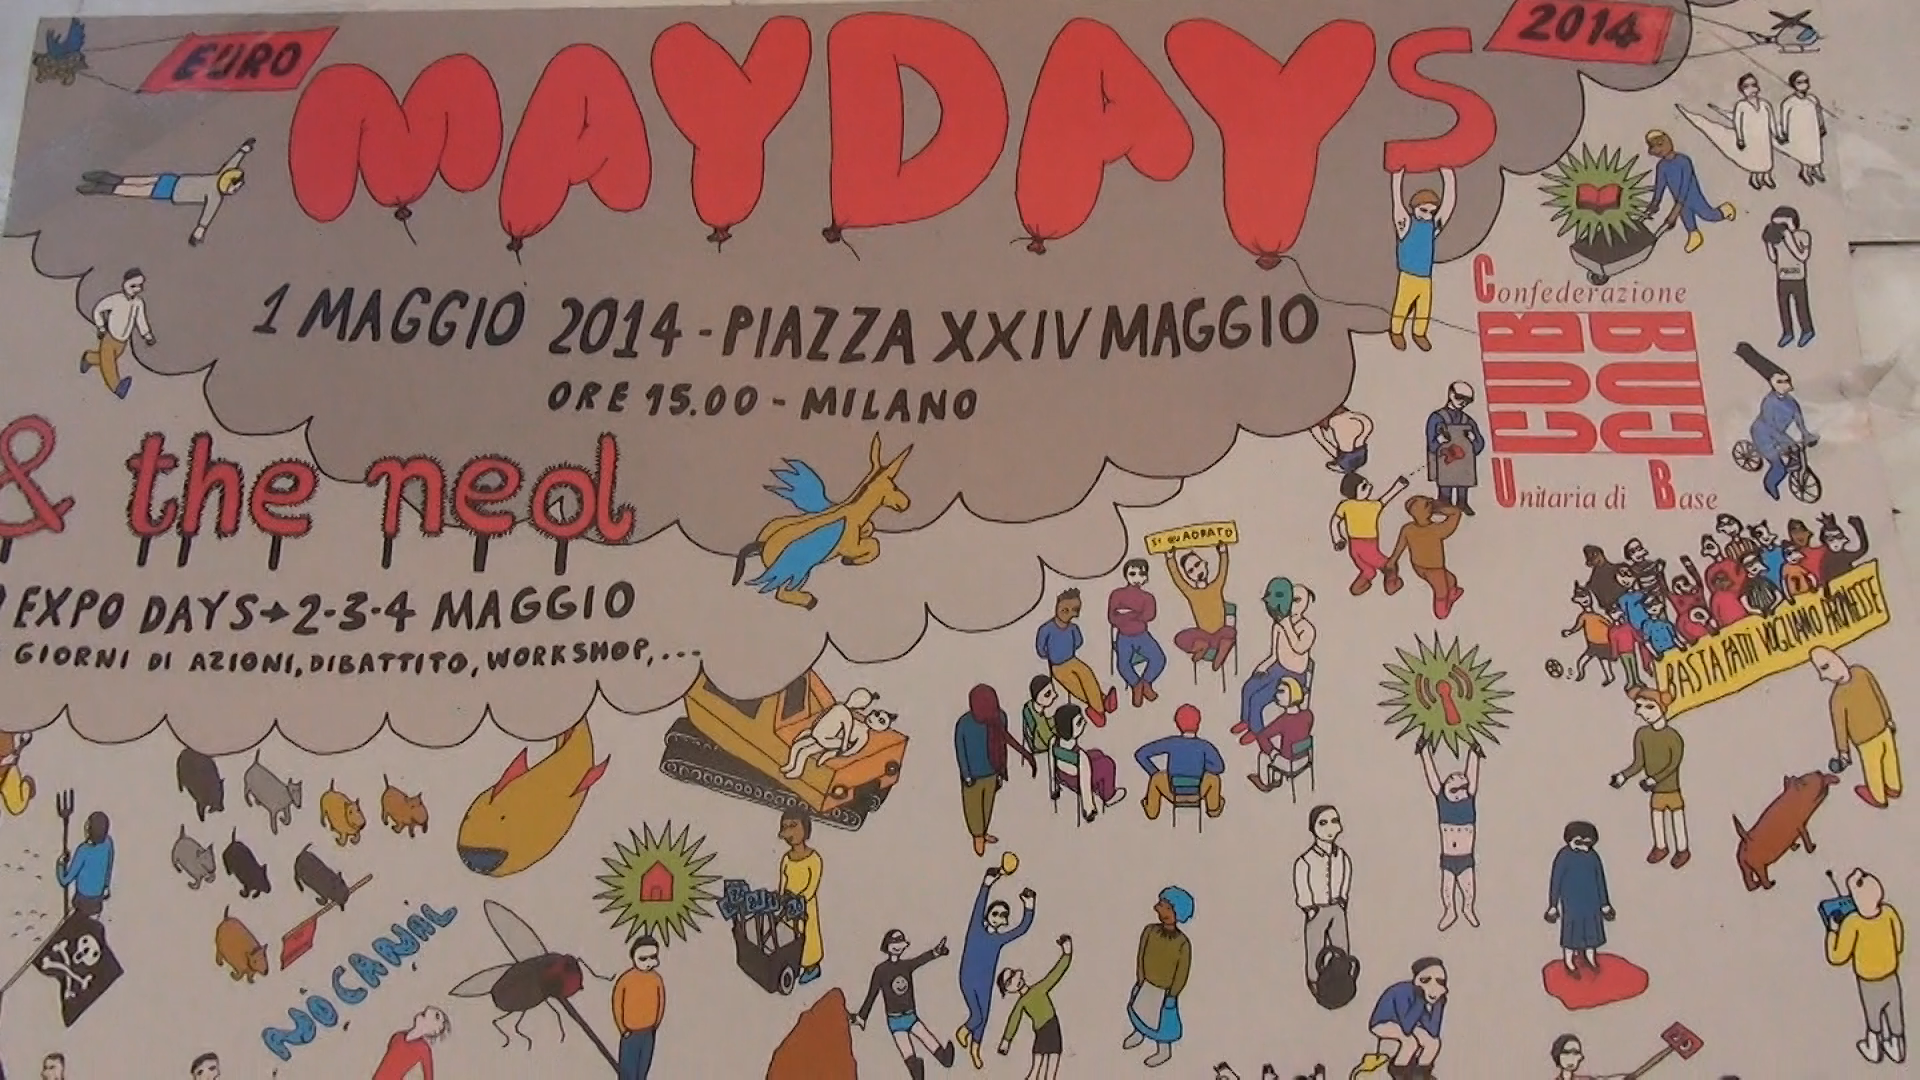 Video Euromayday 2014 Milano